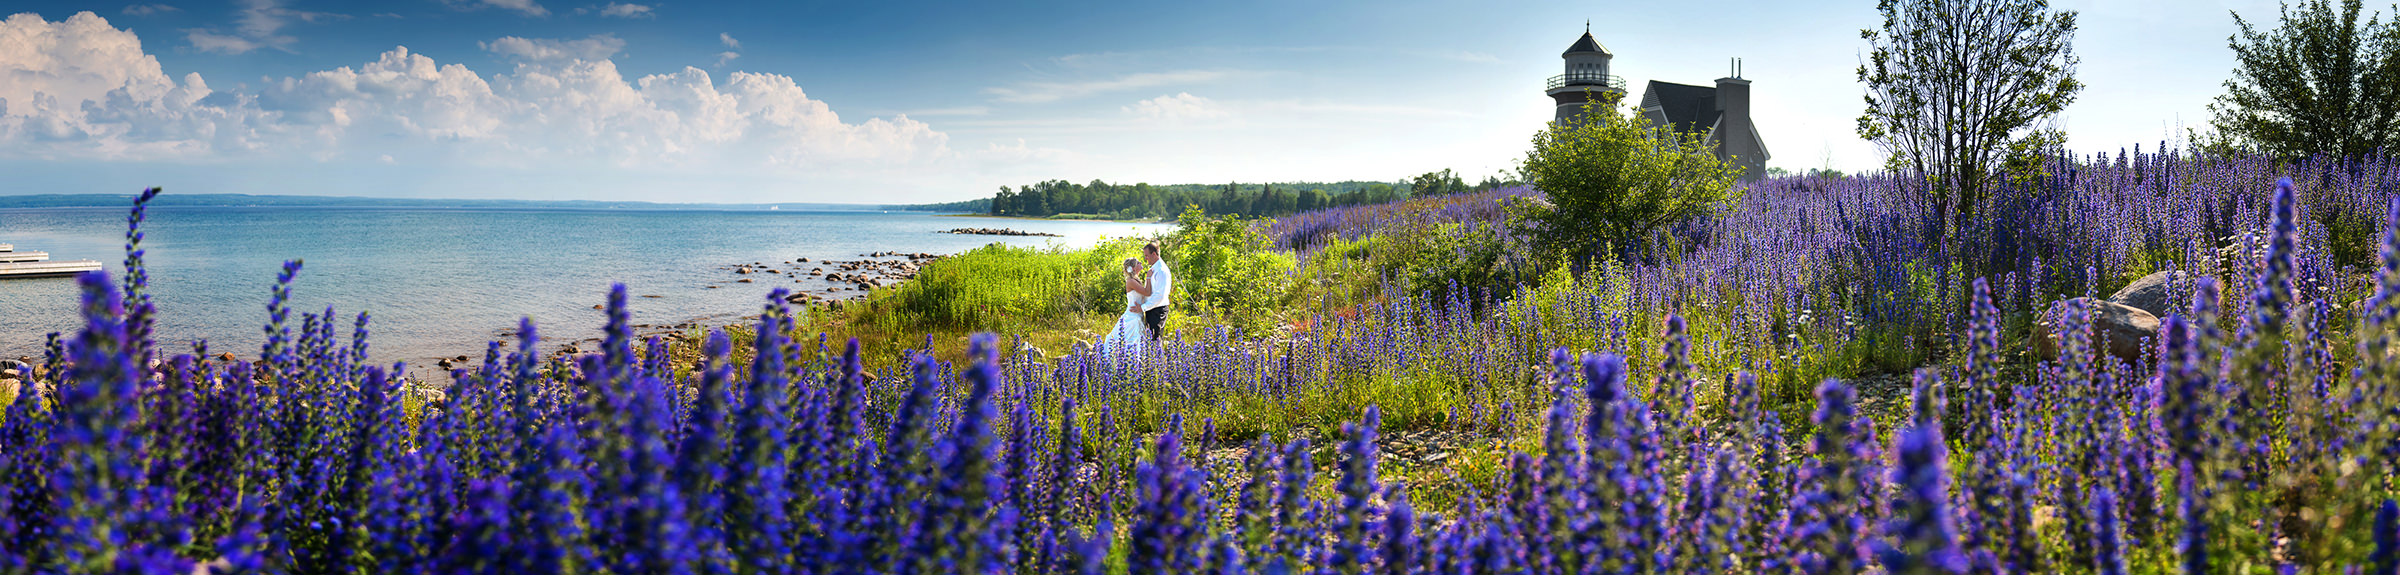 Cobble Beach Golf Resort couple panorama against fields of lavender - photo by David & Sherry Photography